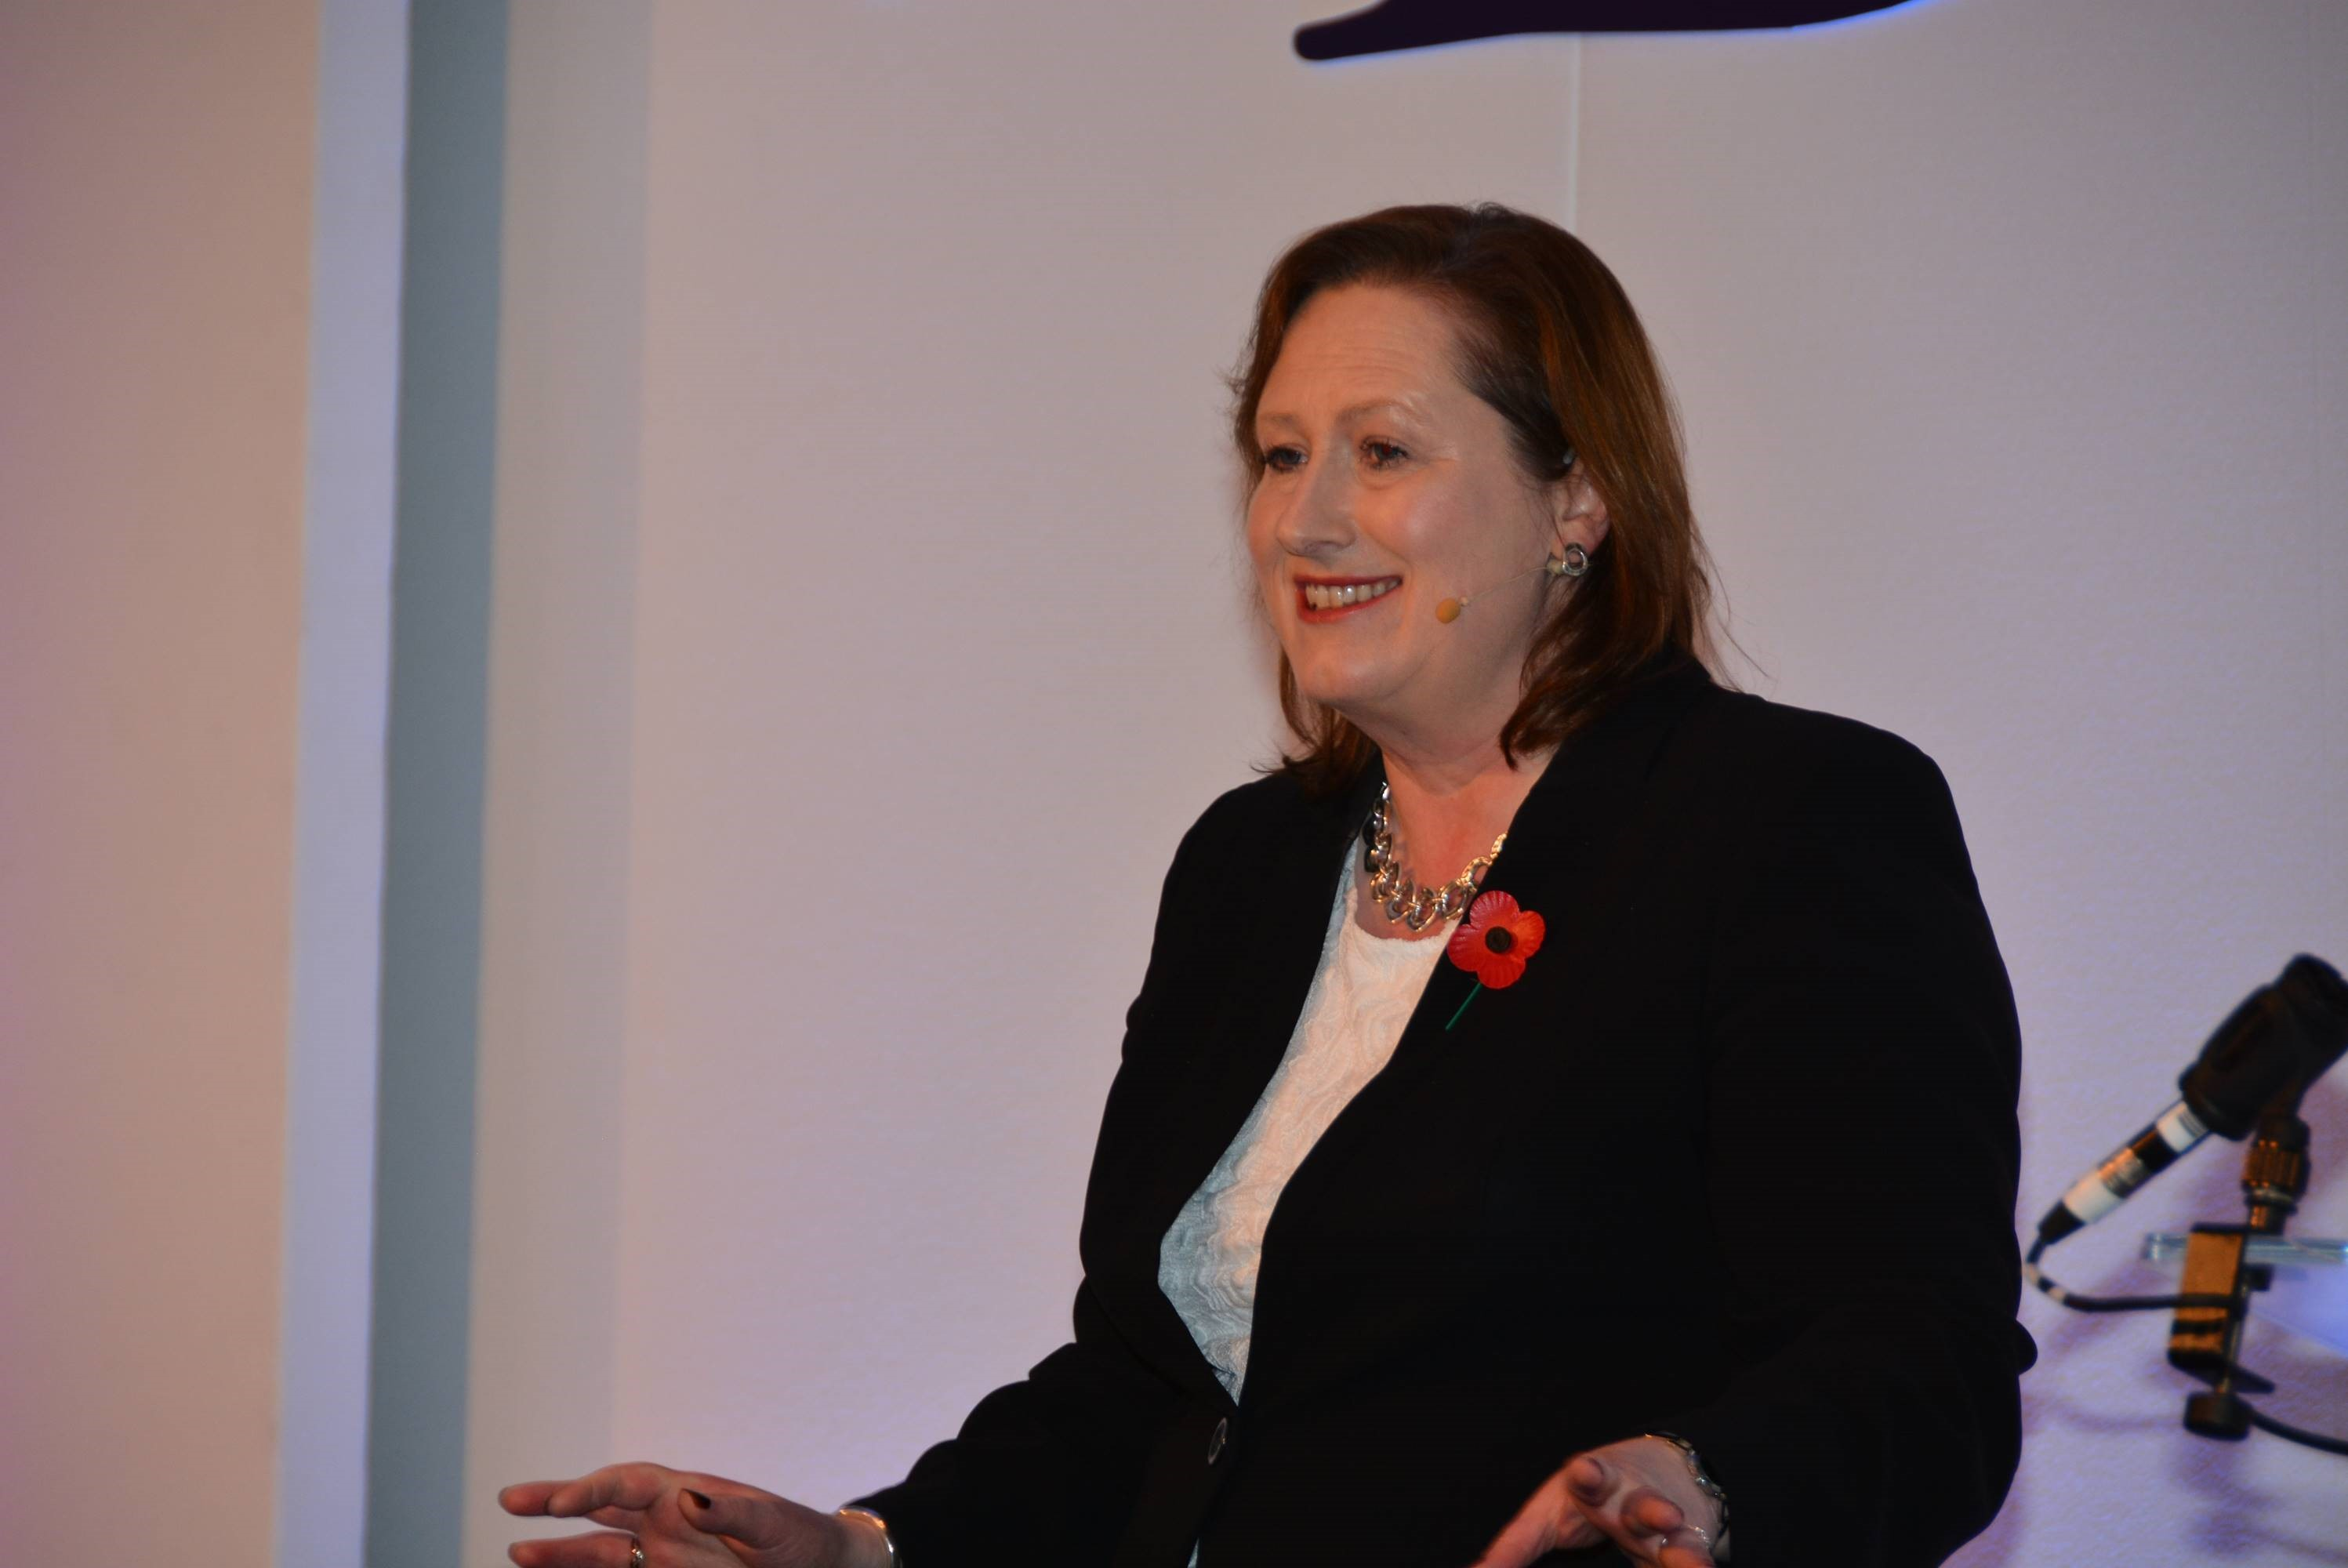 IoD Scotland chairman, Professor Susan Deacon